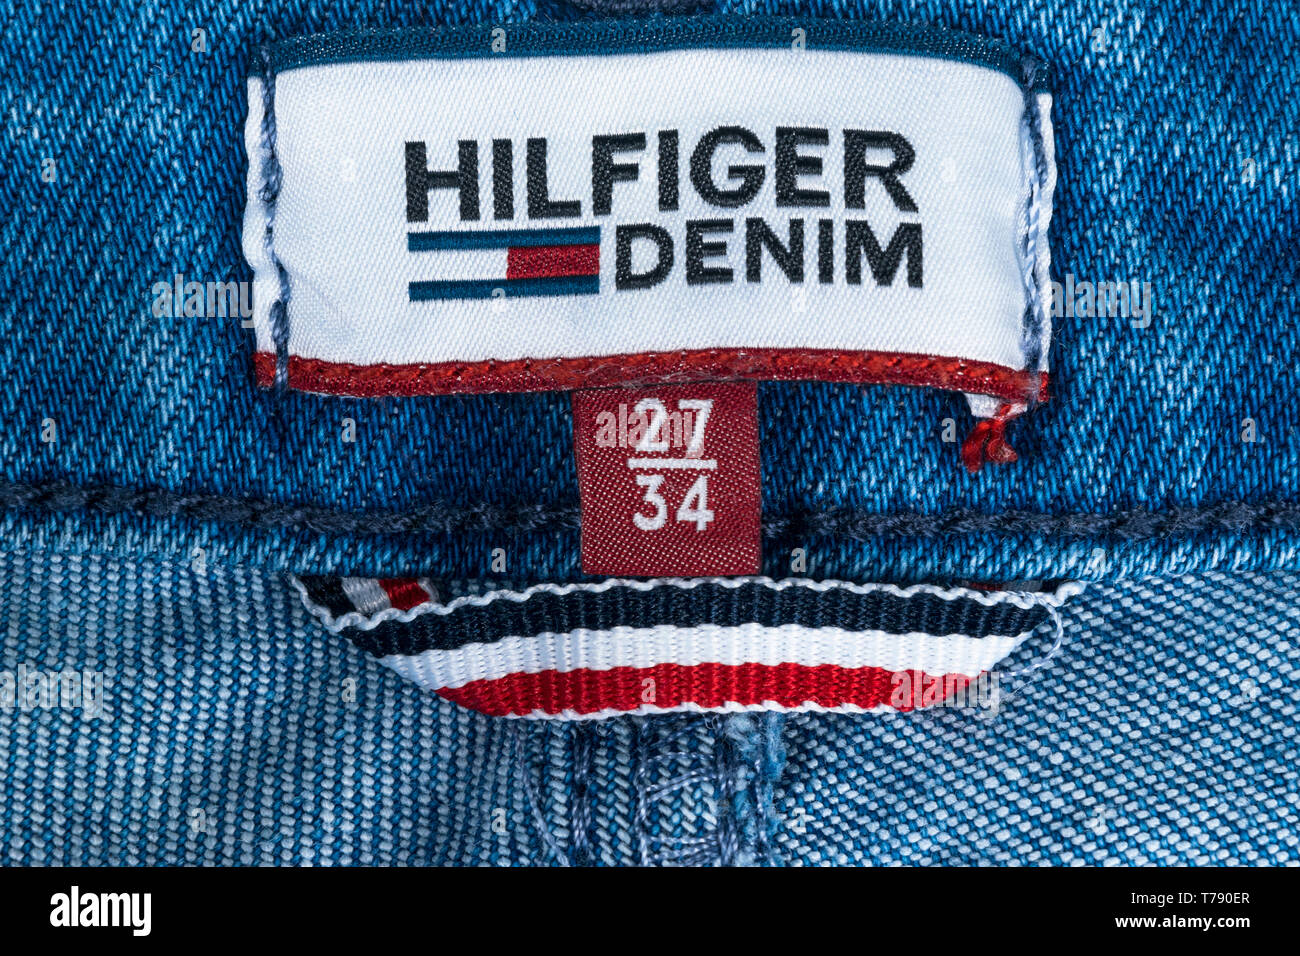 tommy hilfiger is